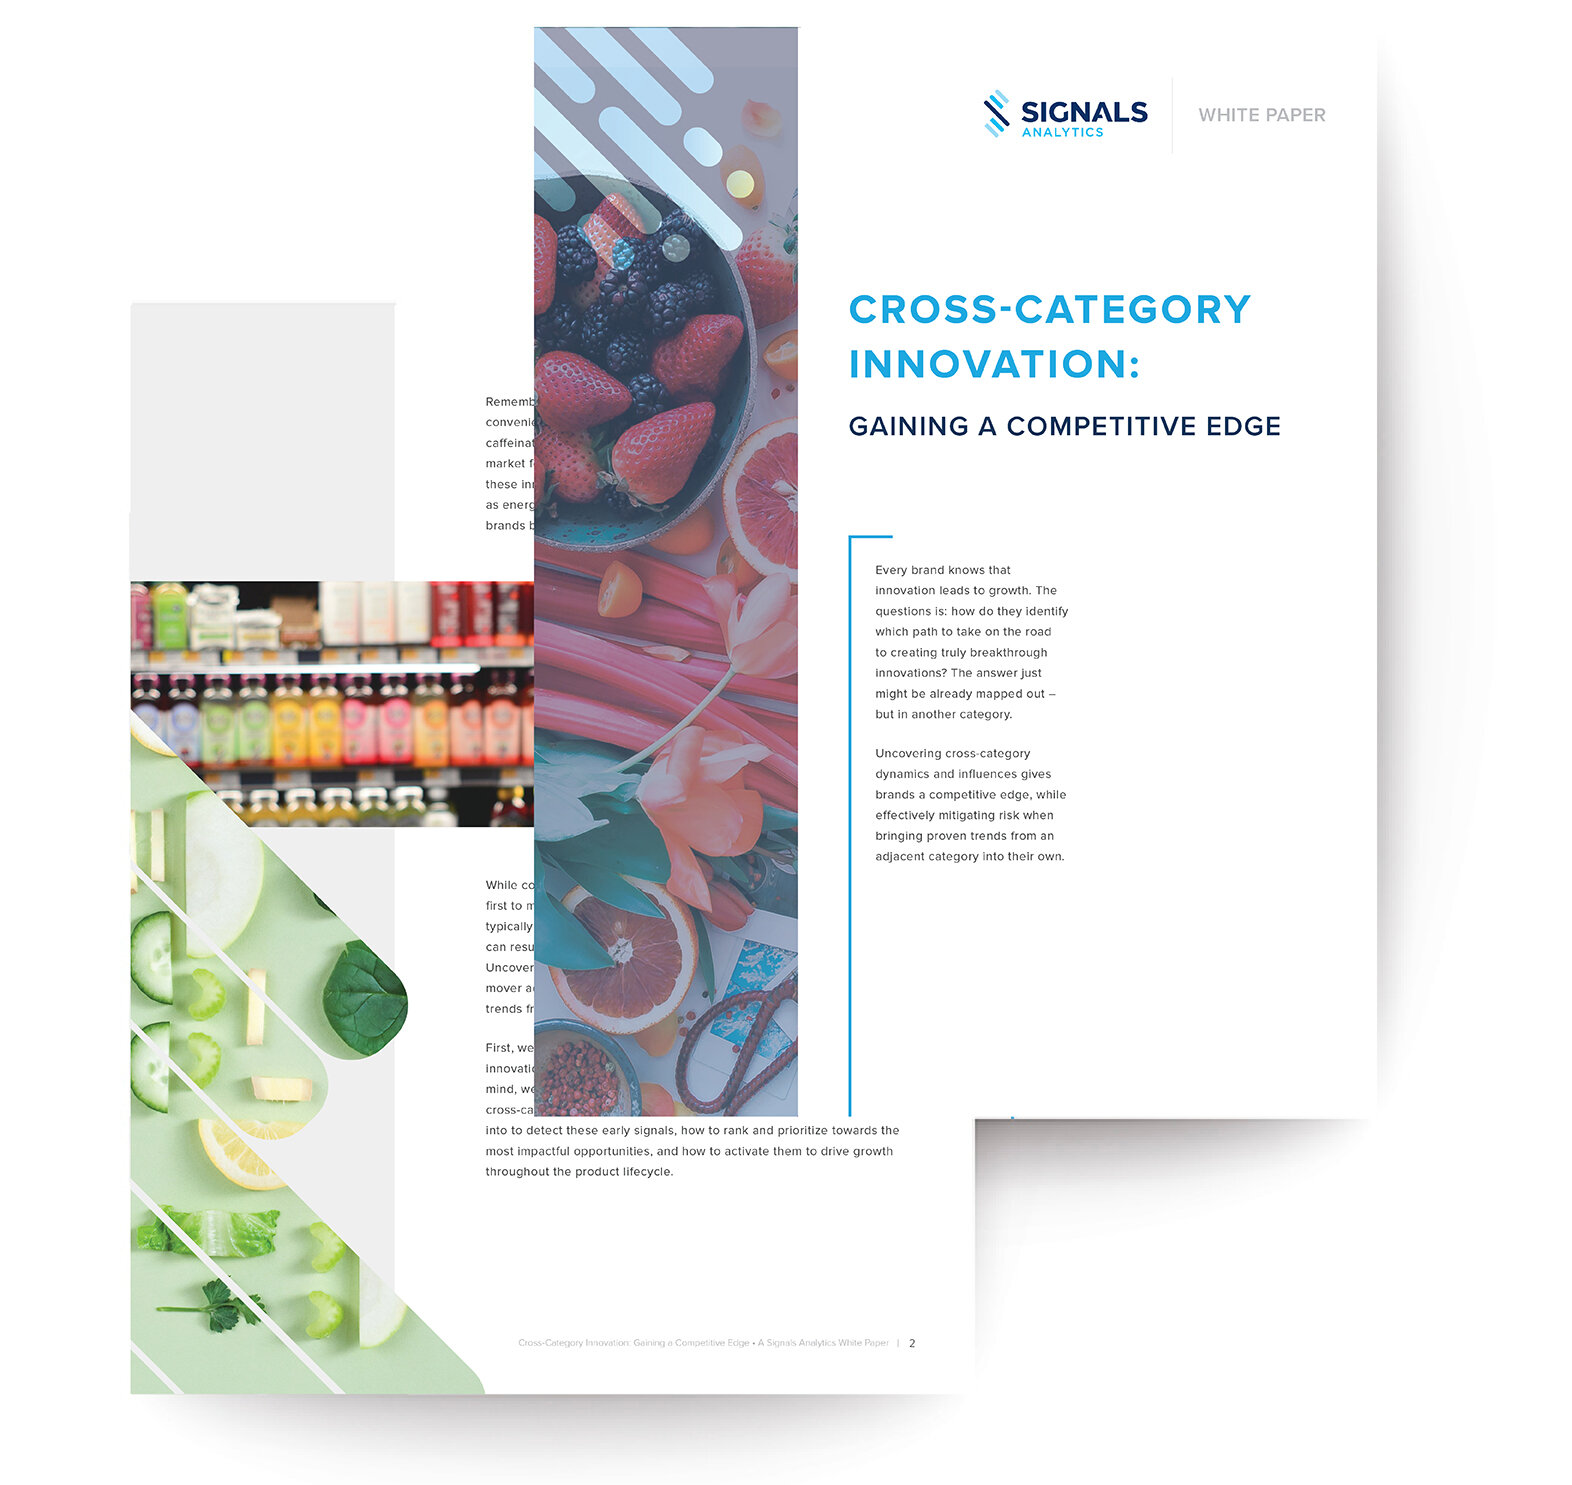 Uncovering cross-category dynamics and influences gives brands the first-mover advantage while mitigating risk.